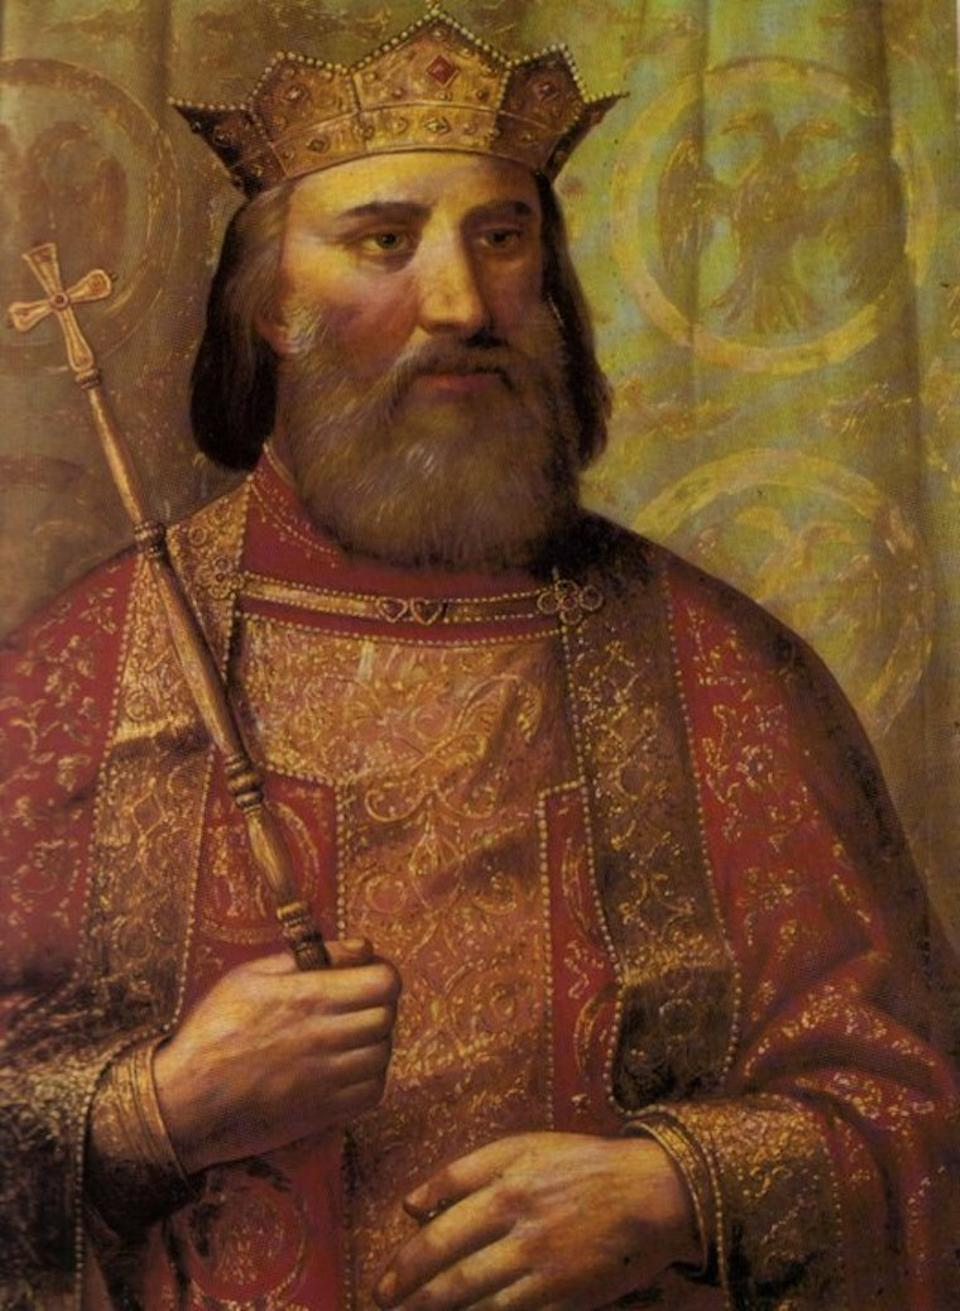 Prince Lazar Hrebeljanović, who was killed at the Battle of Kosovo on June 28, 1389. Oil painting by Vladislav Titelbah, dated to1900.